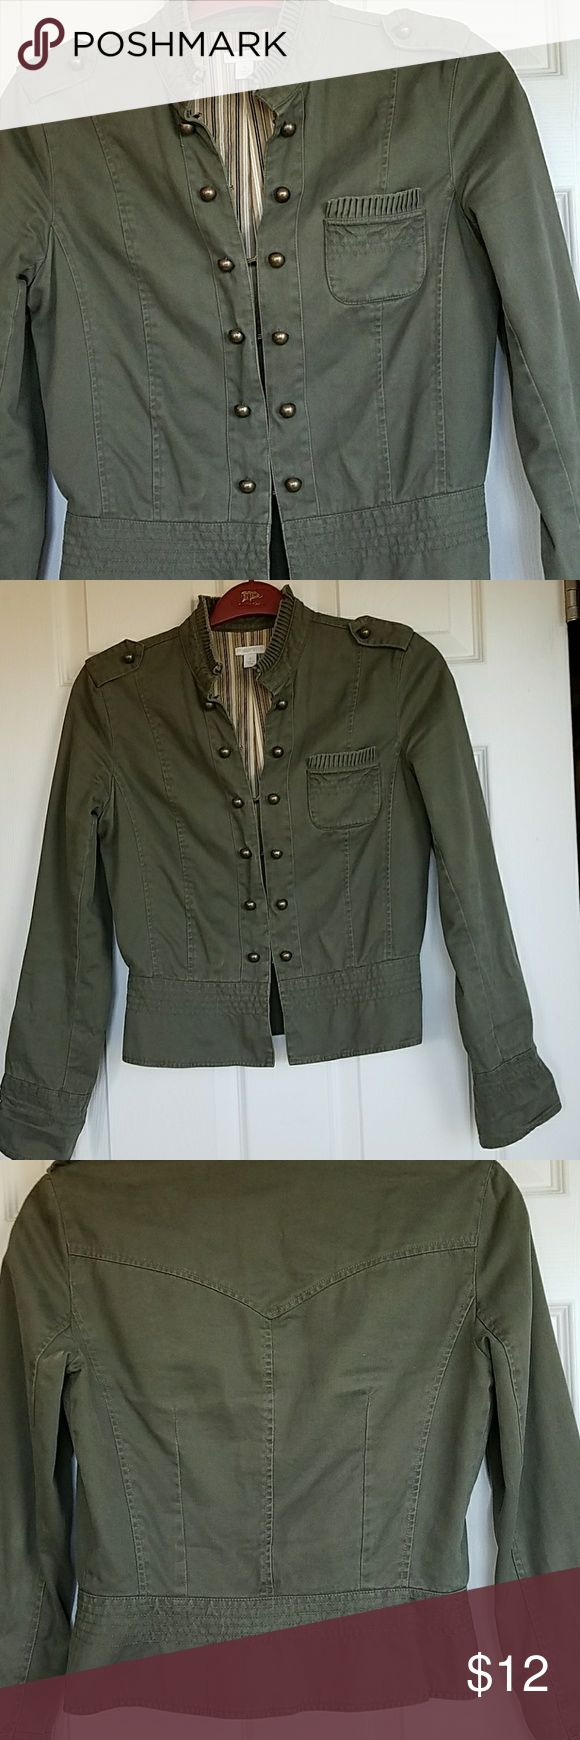 Military style jacket army green Apt 9 brand military style jacket army green.  Very cute. Good condition size small. Apt. 9 Jackets & Coats Utility Jackets